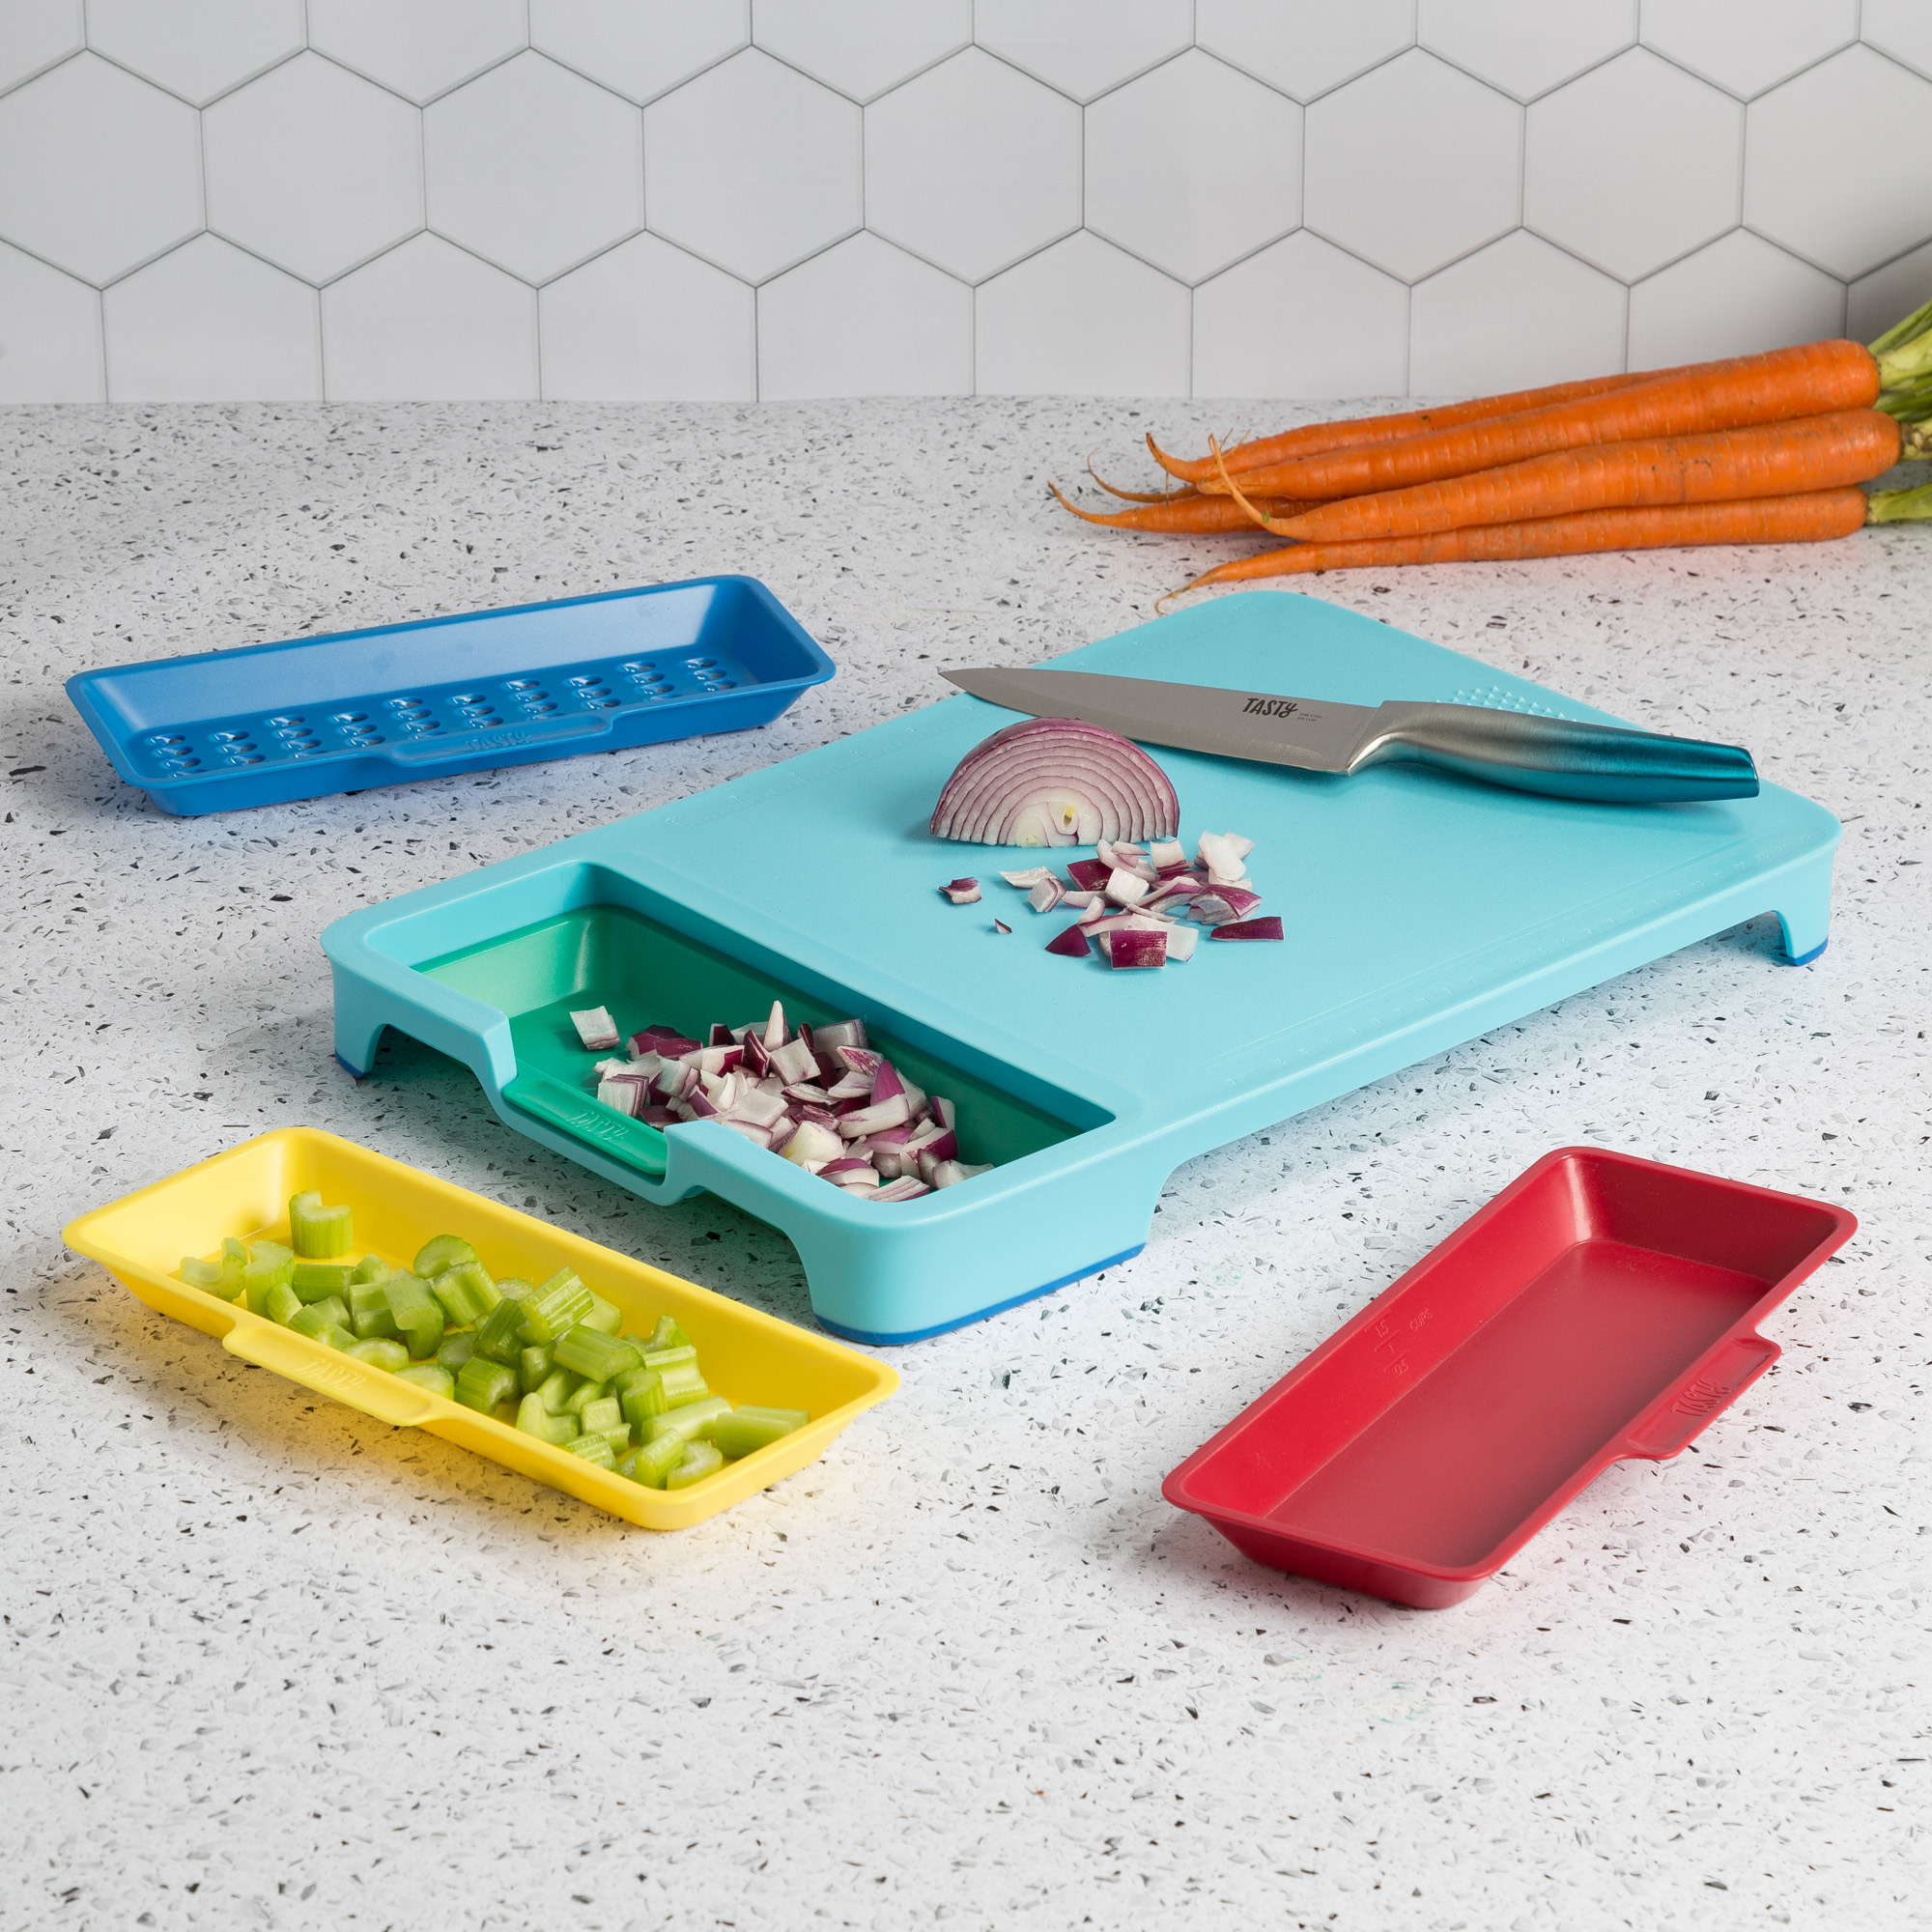 The cutting board with 3 trays removed and 2 featuring chopped vegetables to show their measuring capabilities